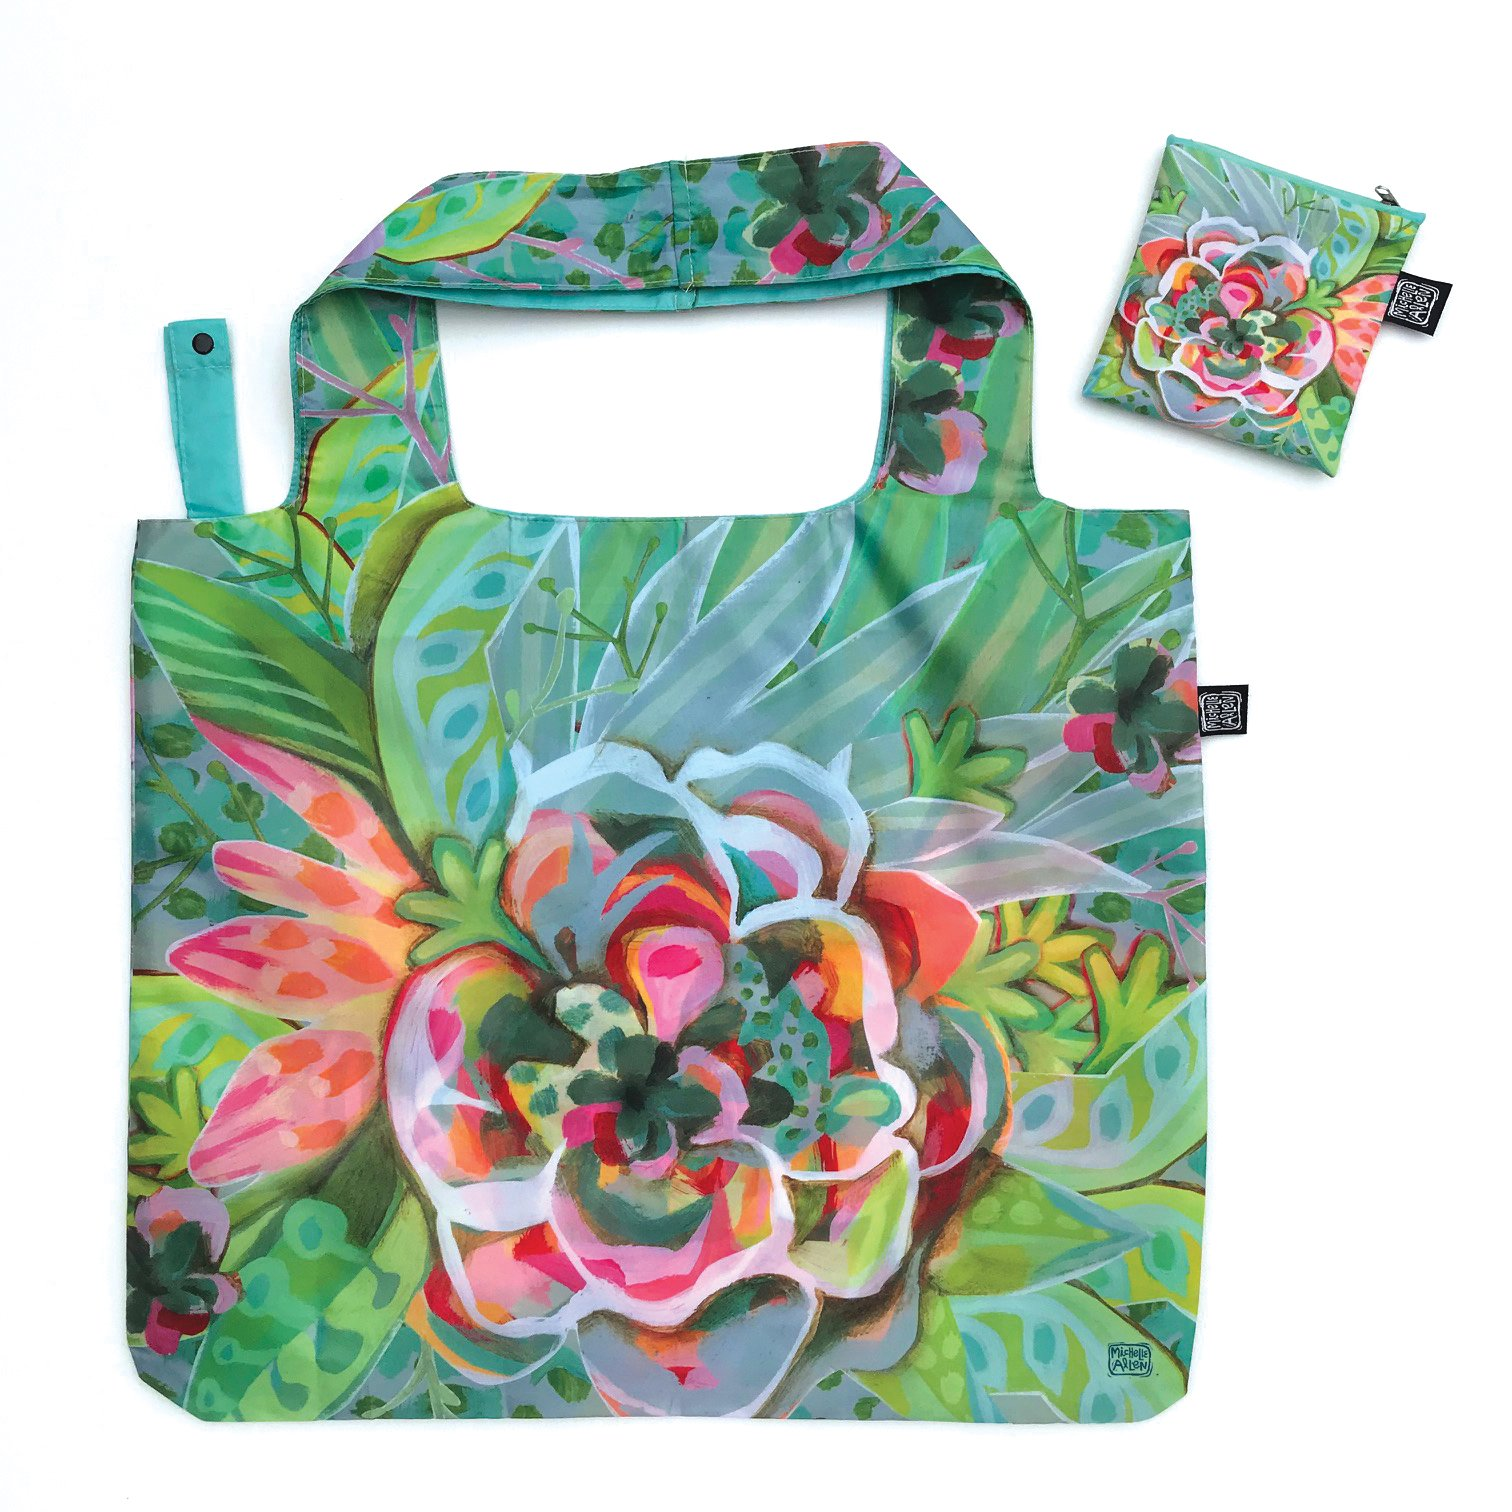 Allen Designs - Foldable Bag - Several options available